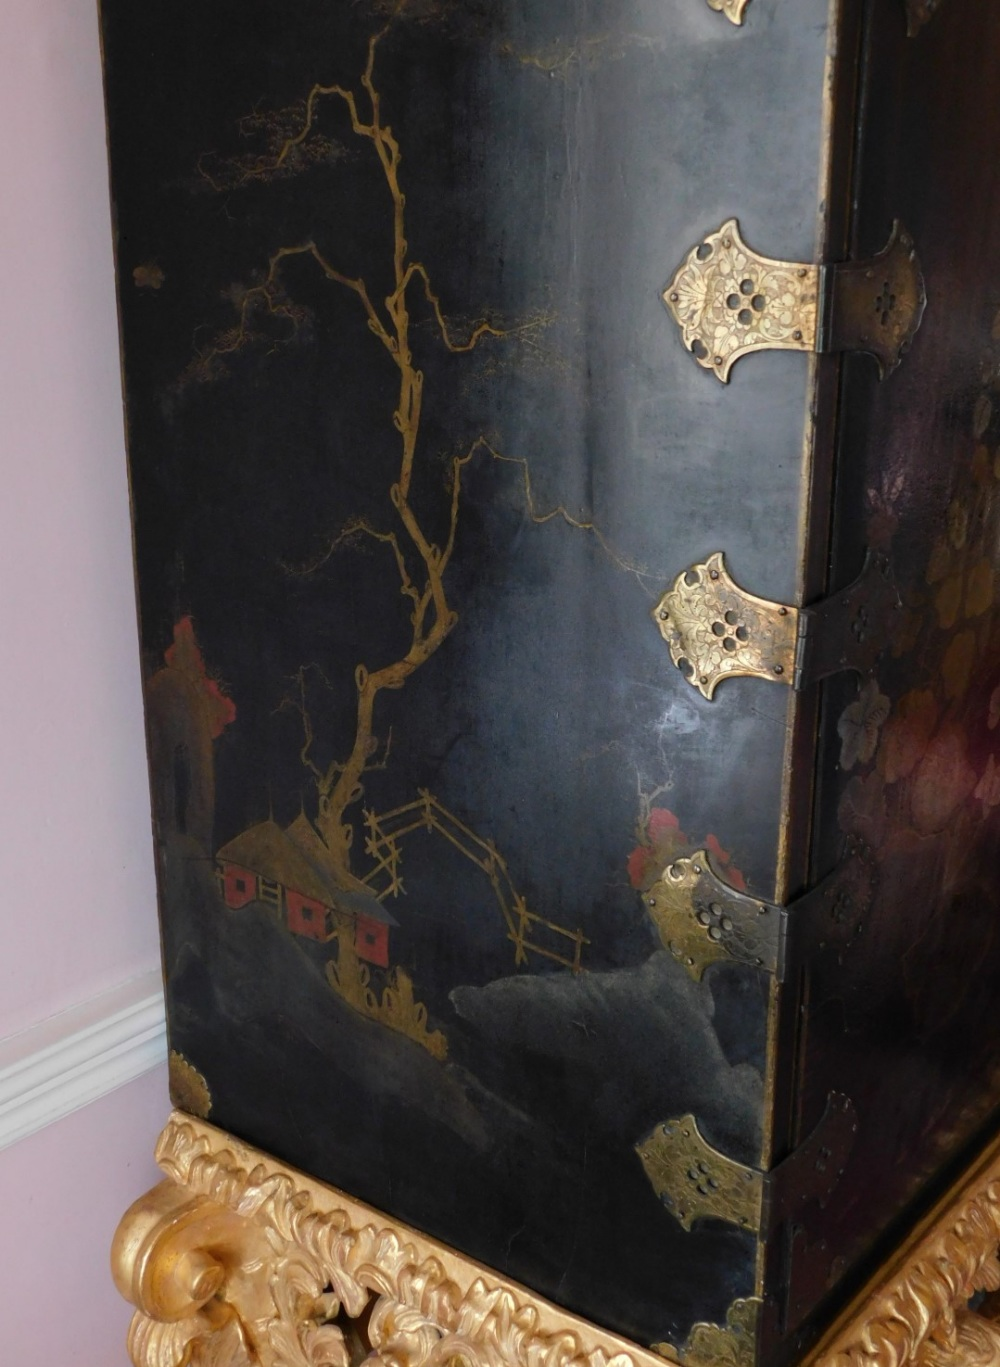 A late 17th/early 18thC Japanned cabinet, decorated in gilt and silver with flowers, buildings, etc. - Image 5 of 8